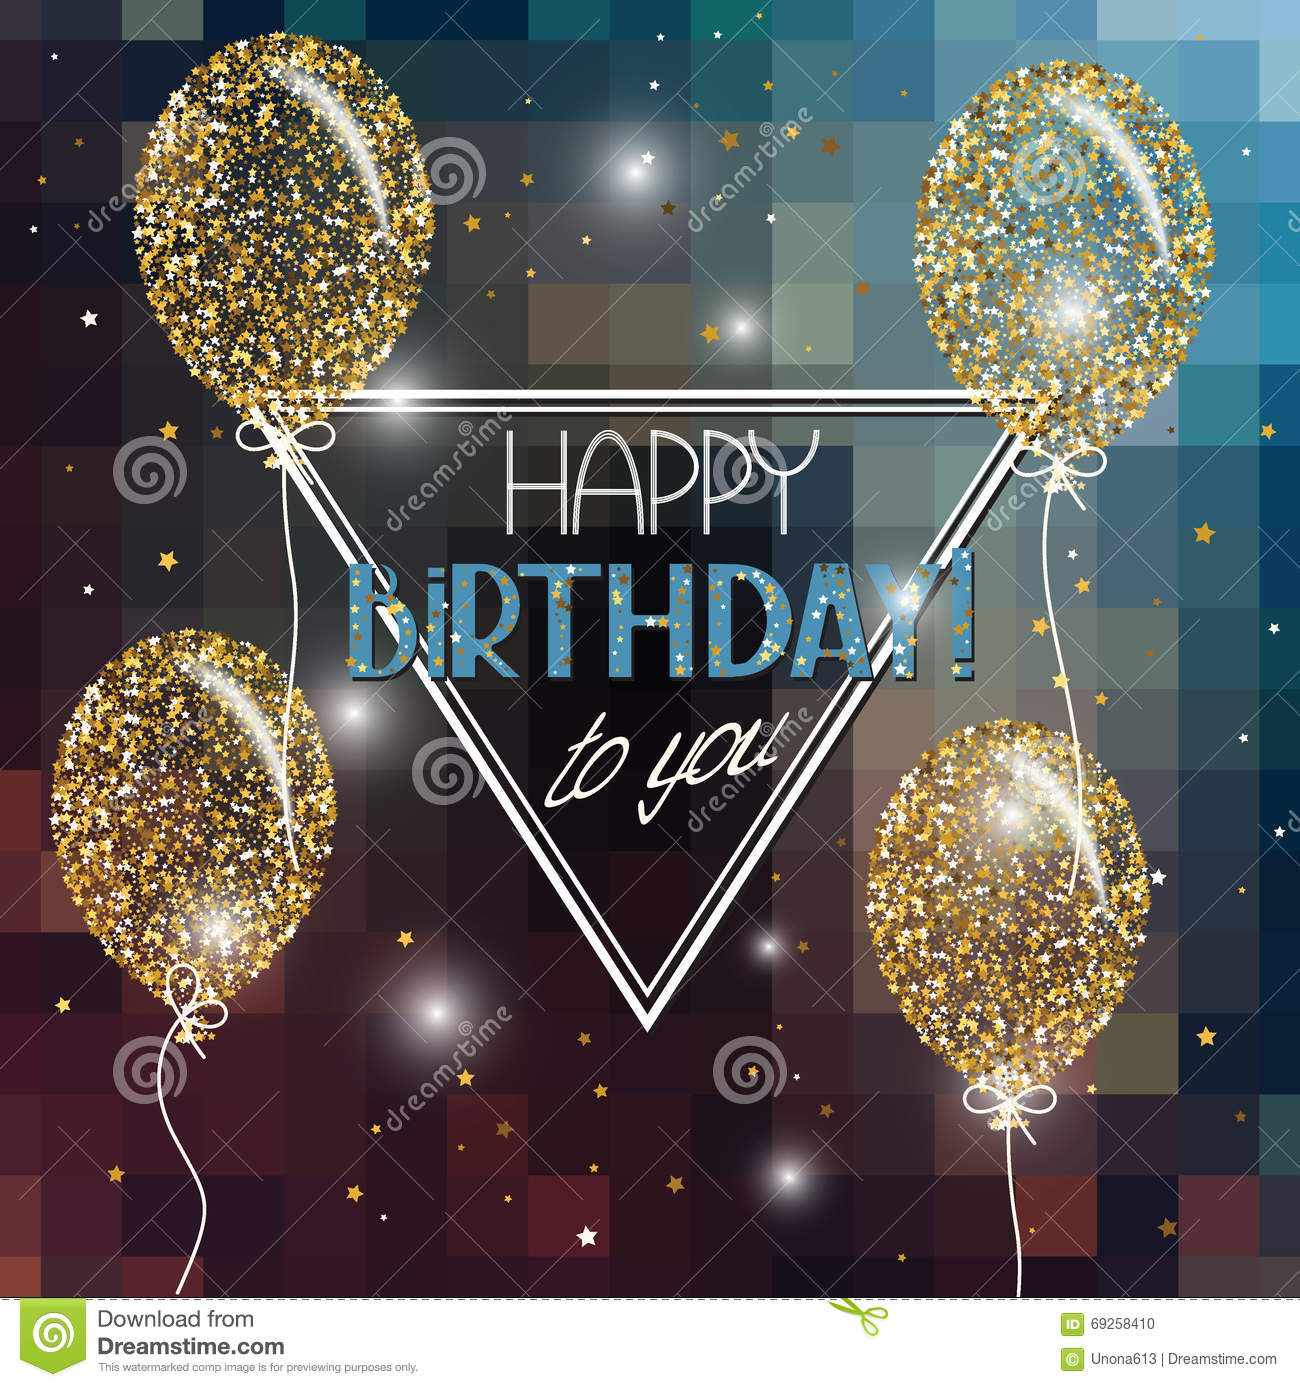 Vector Illustration With Abstract Air Balloons Stars And Happy Birthday Wishes